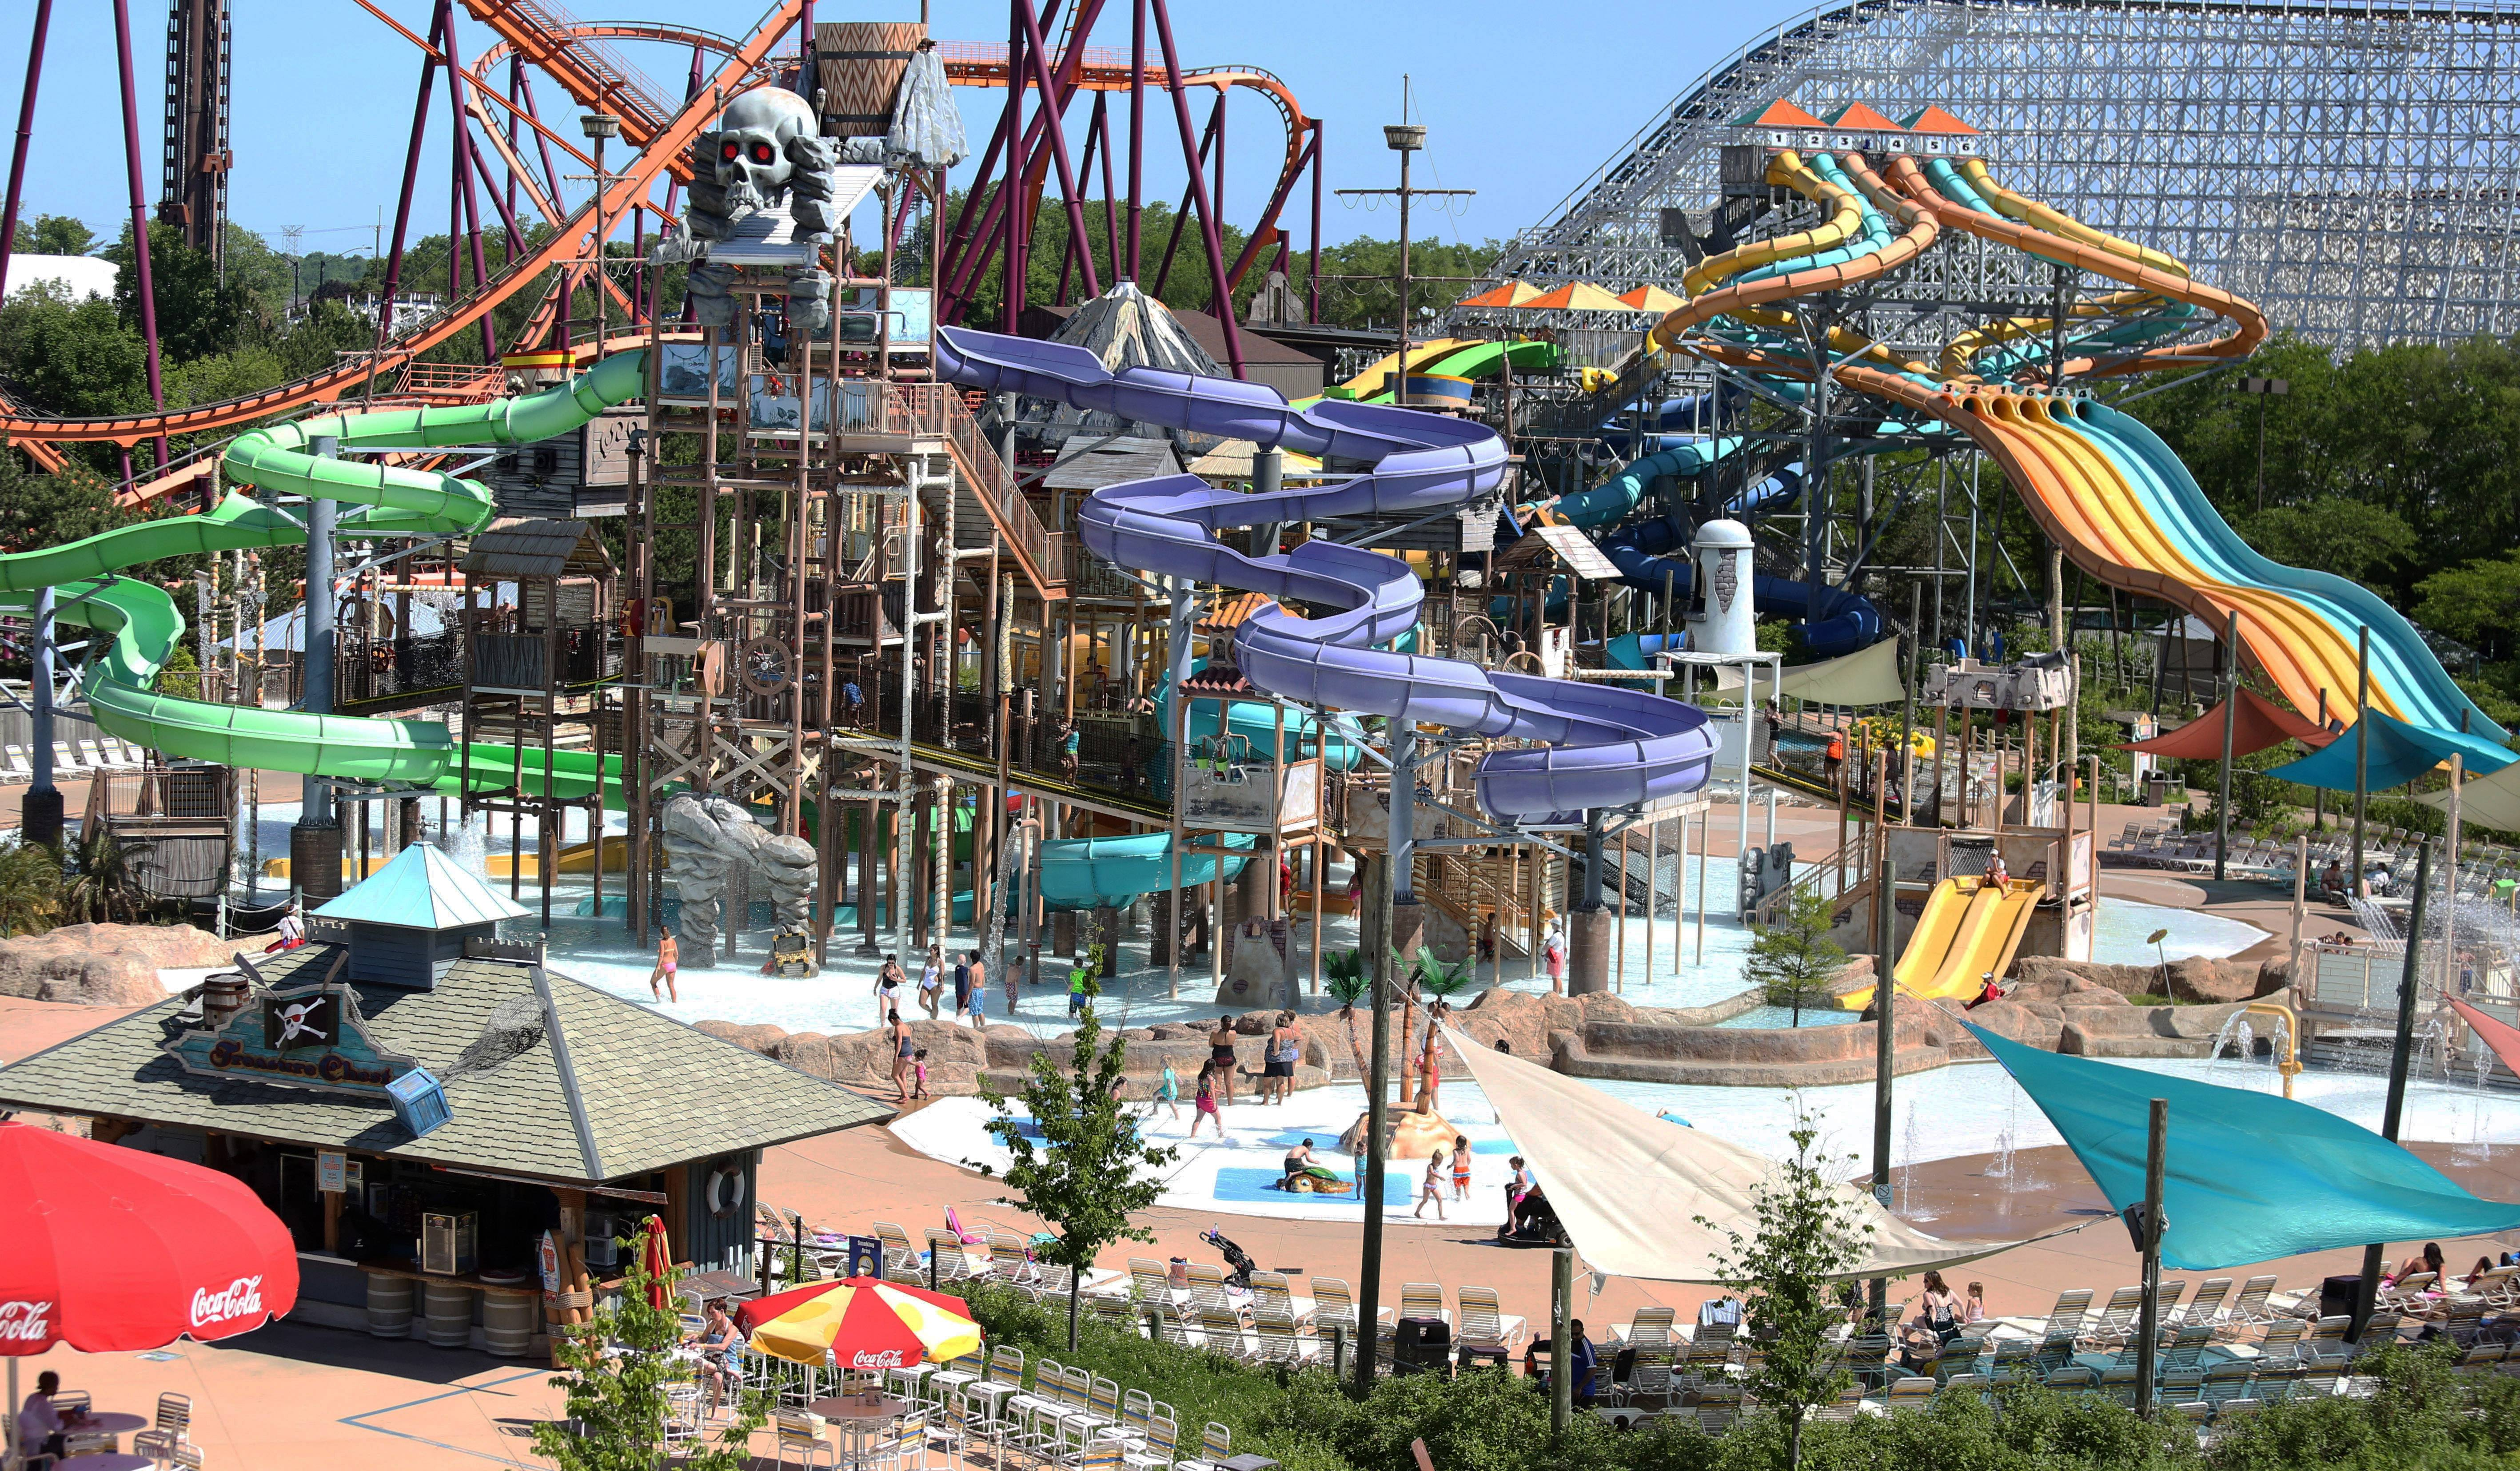 Kids make a splash at Skull Island play area at Great America's Hurricane Harbor.